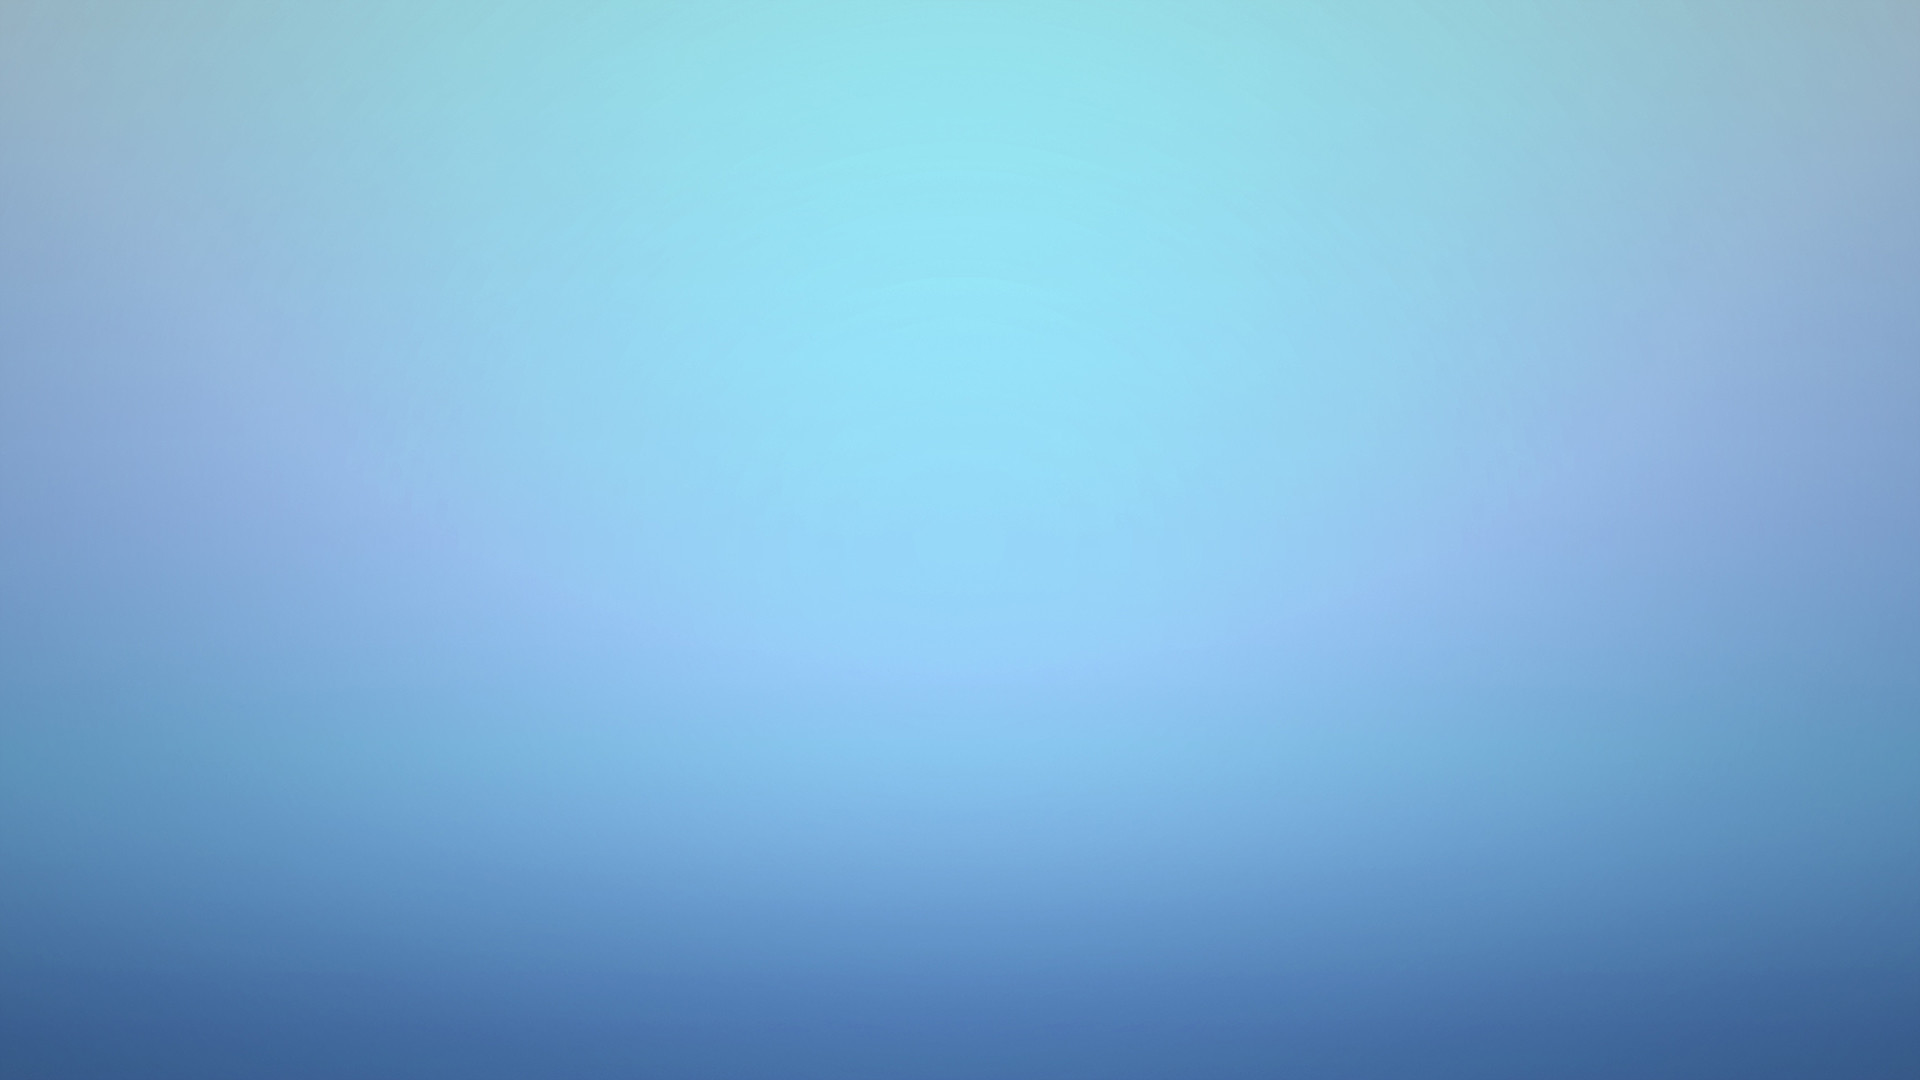 Colored backgrounds 43 images - World of color wallpaper ...